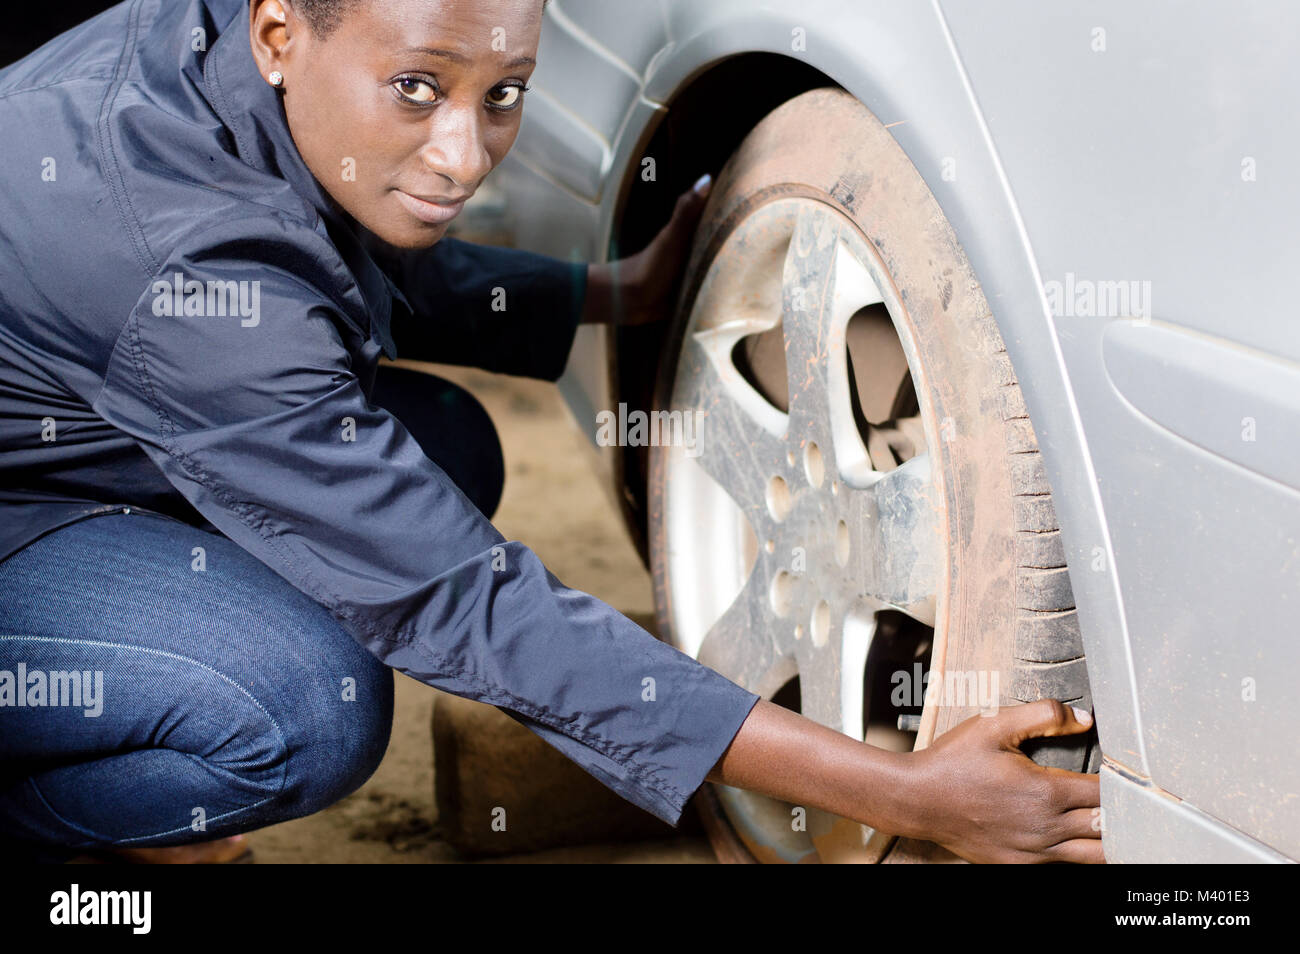 Young woman mechanic squatting near a car removes her tire. - Stock Image